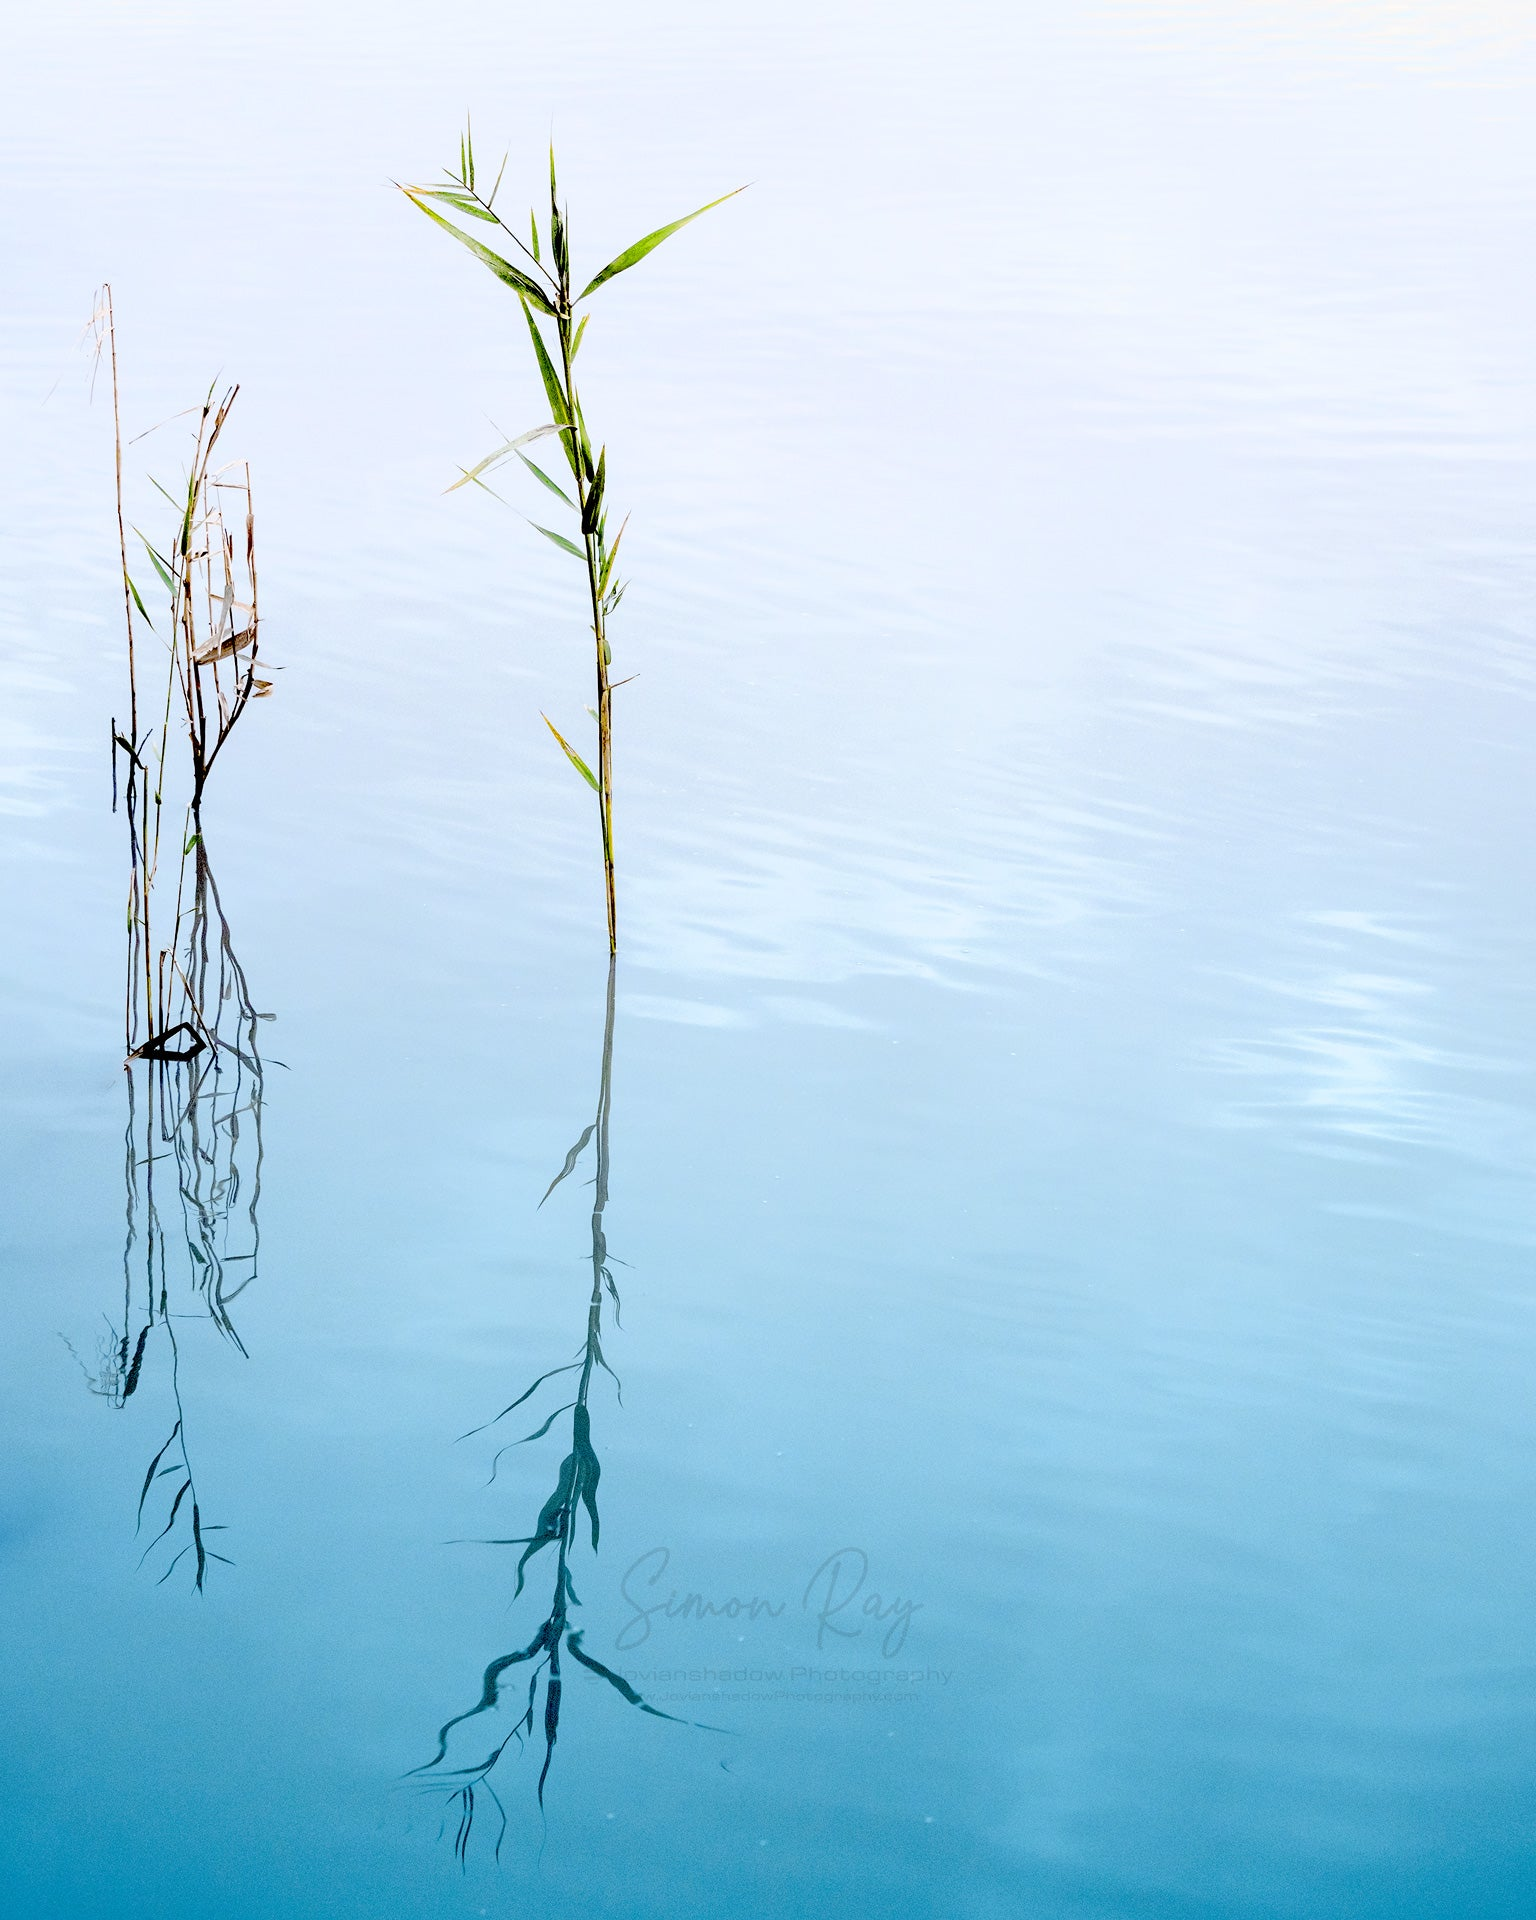 Reeds in a Lake